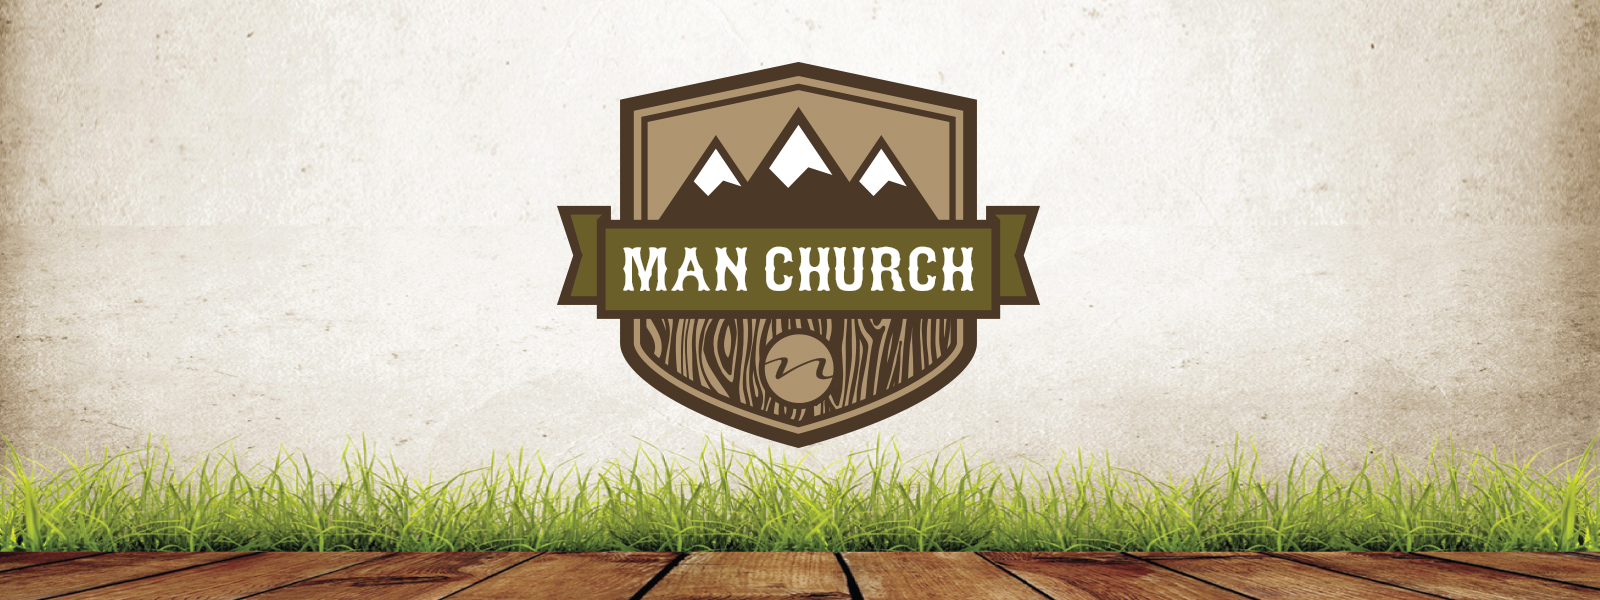 Man Church